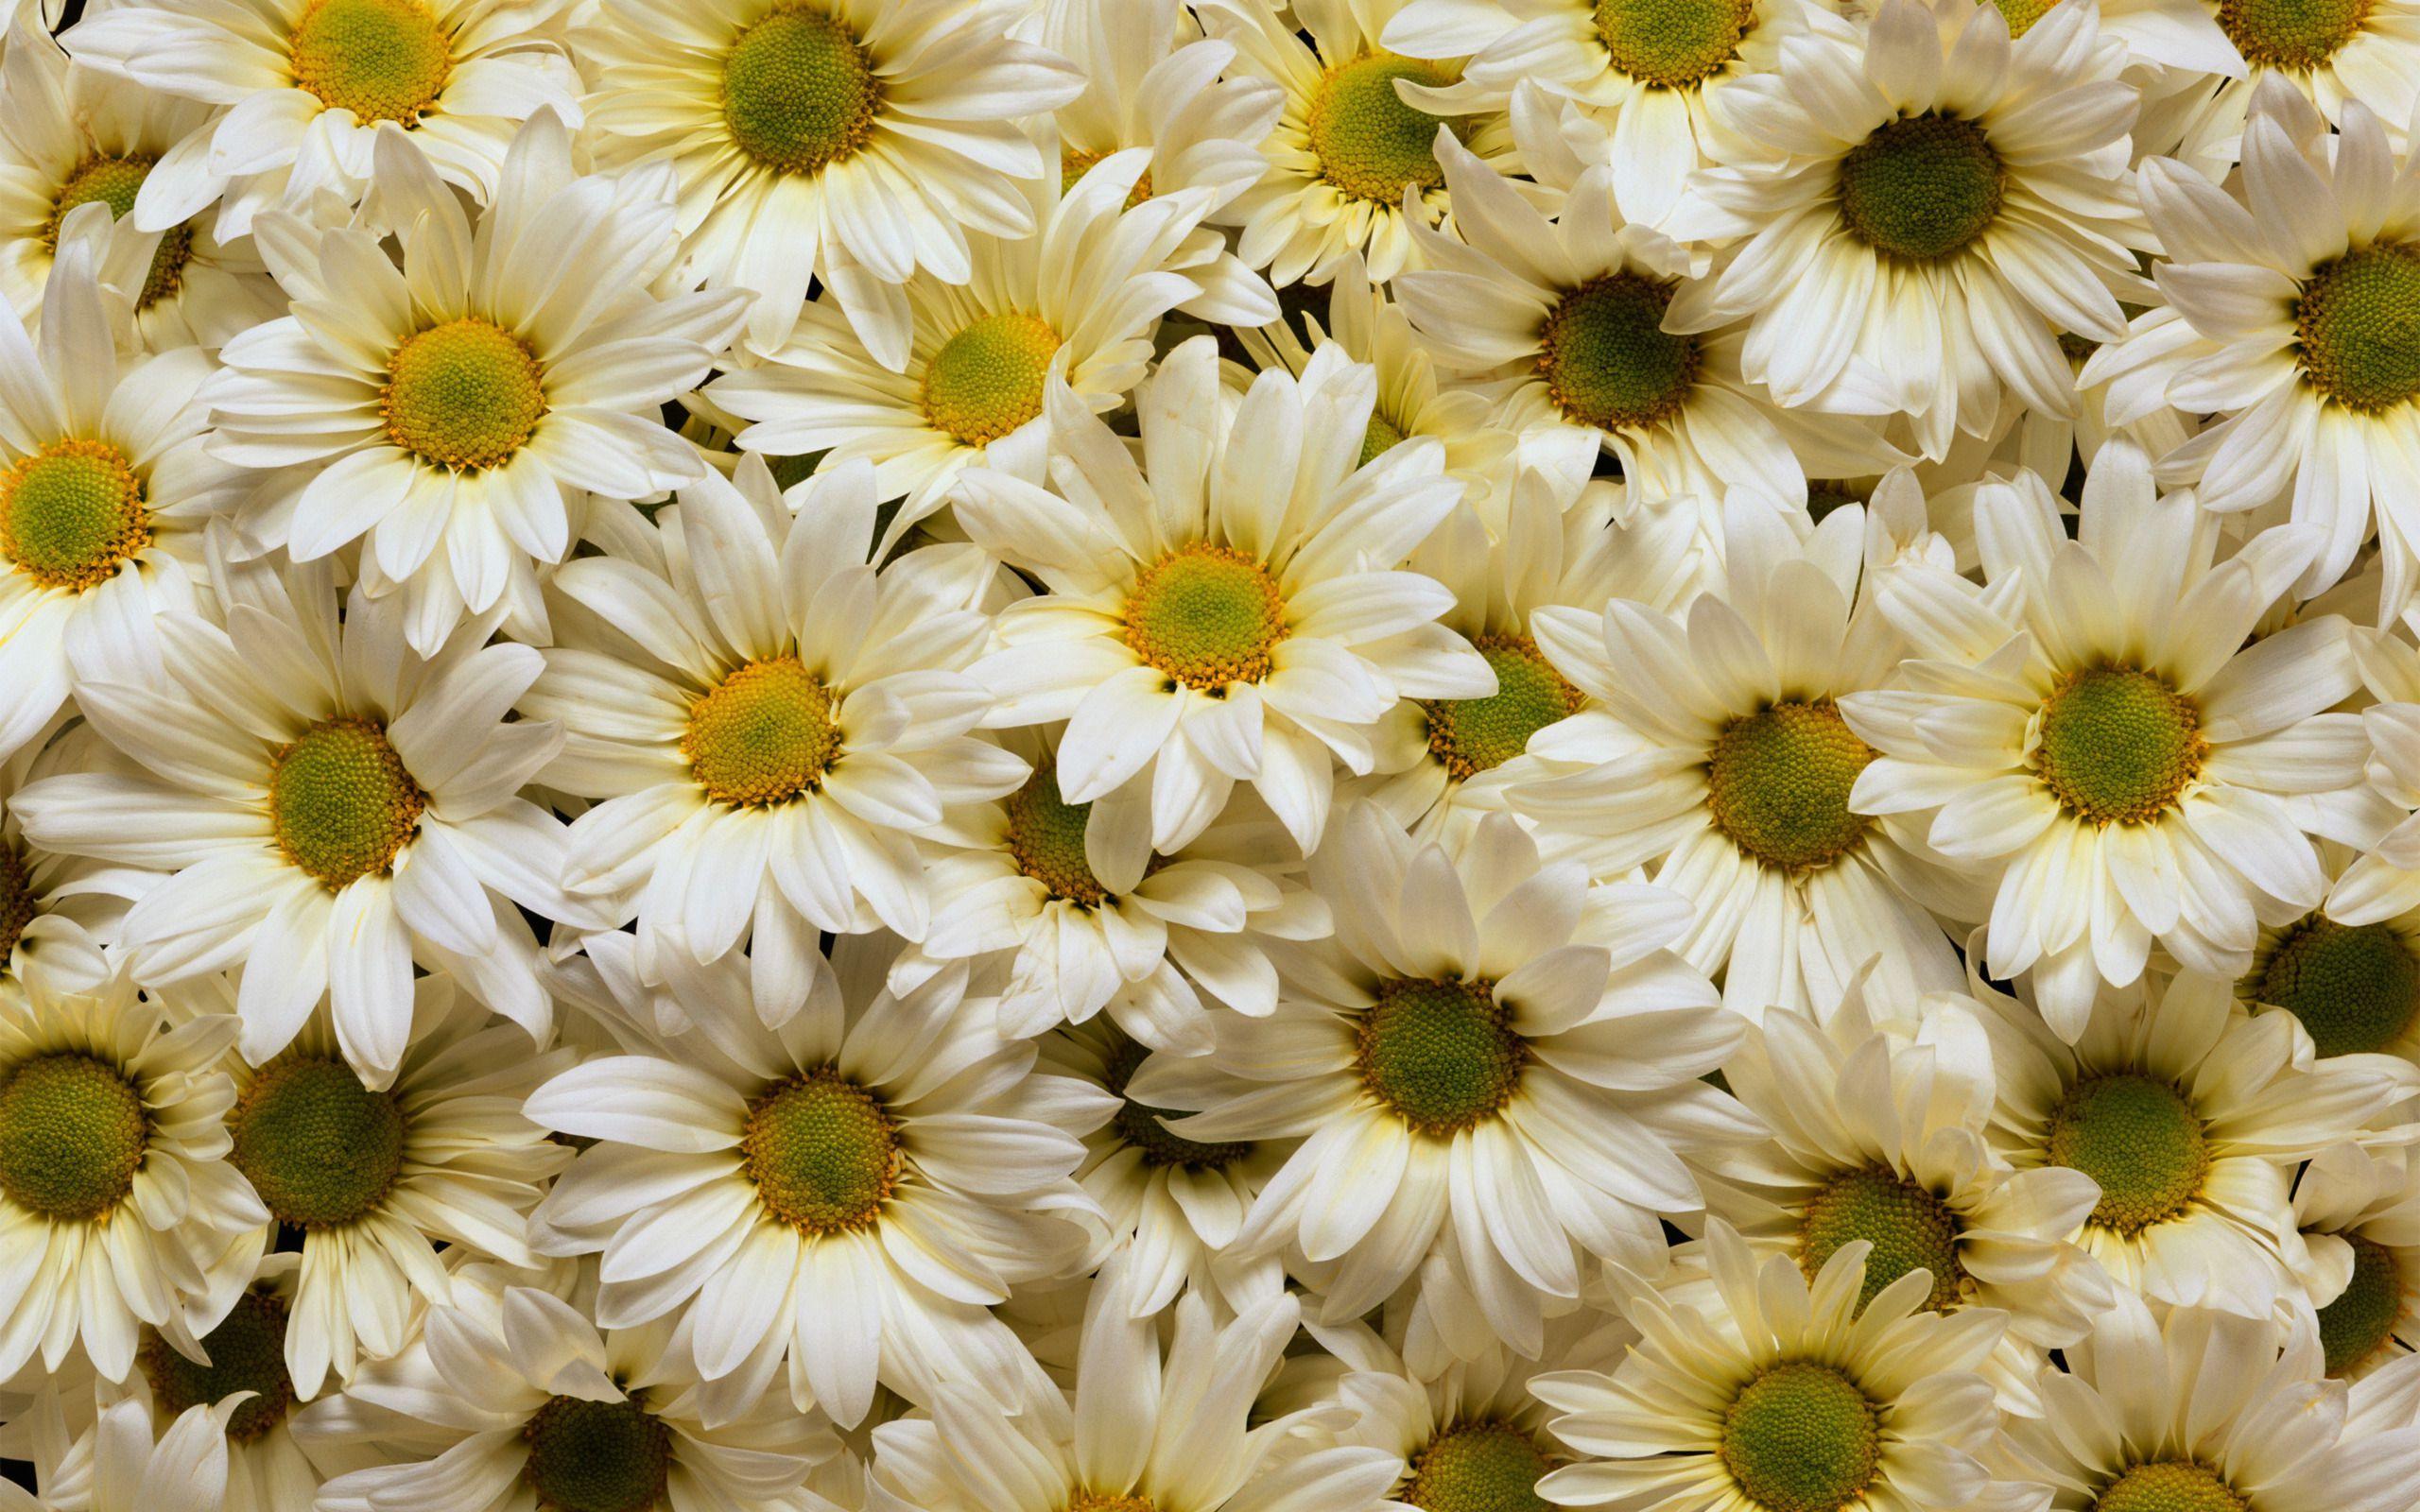 Beautiful  White  Daisies  Desktop  Background  Wallpaper Free